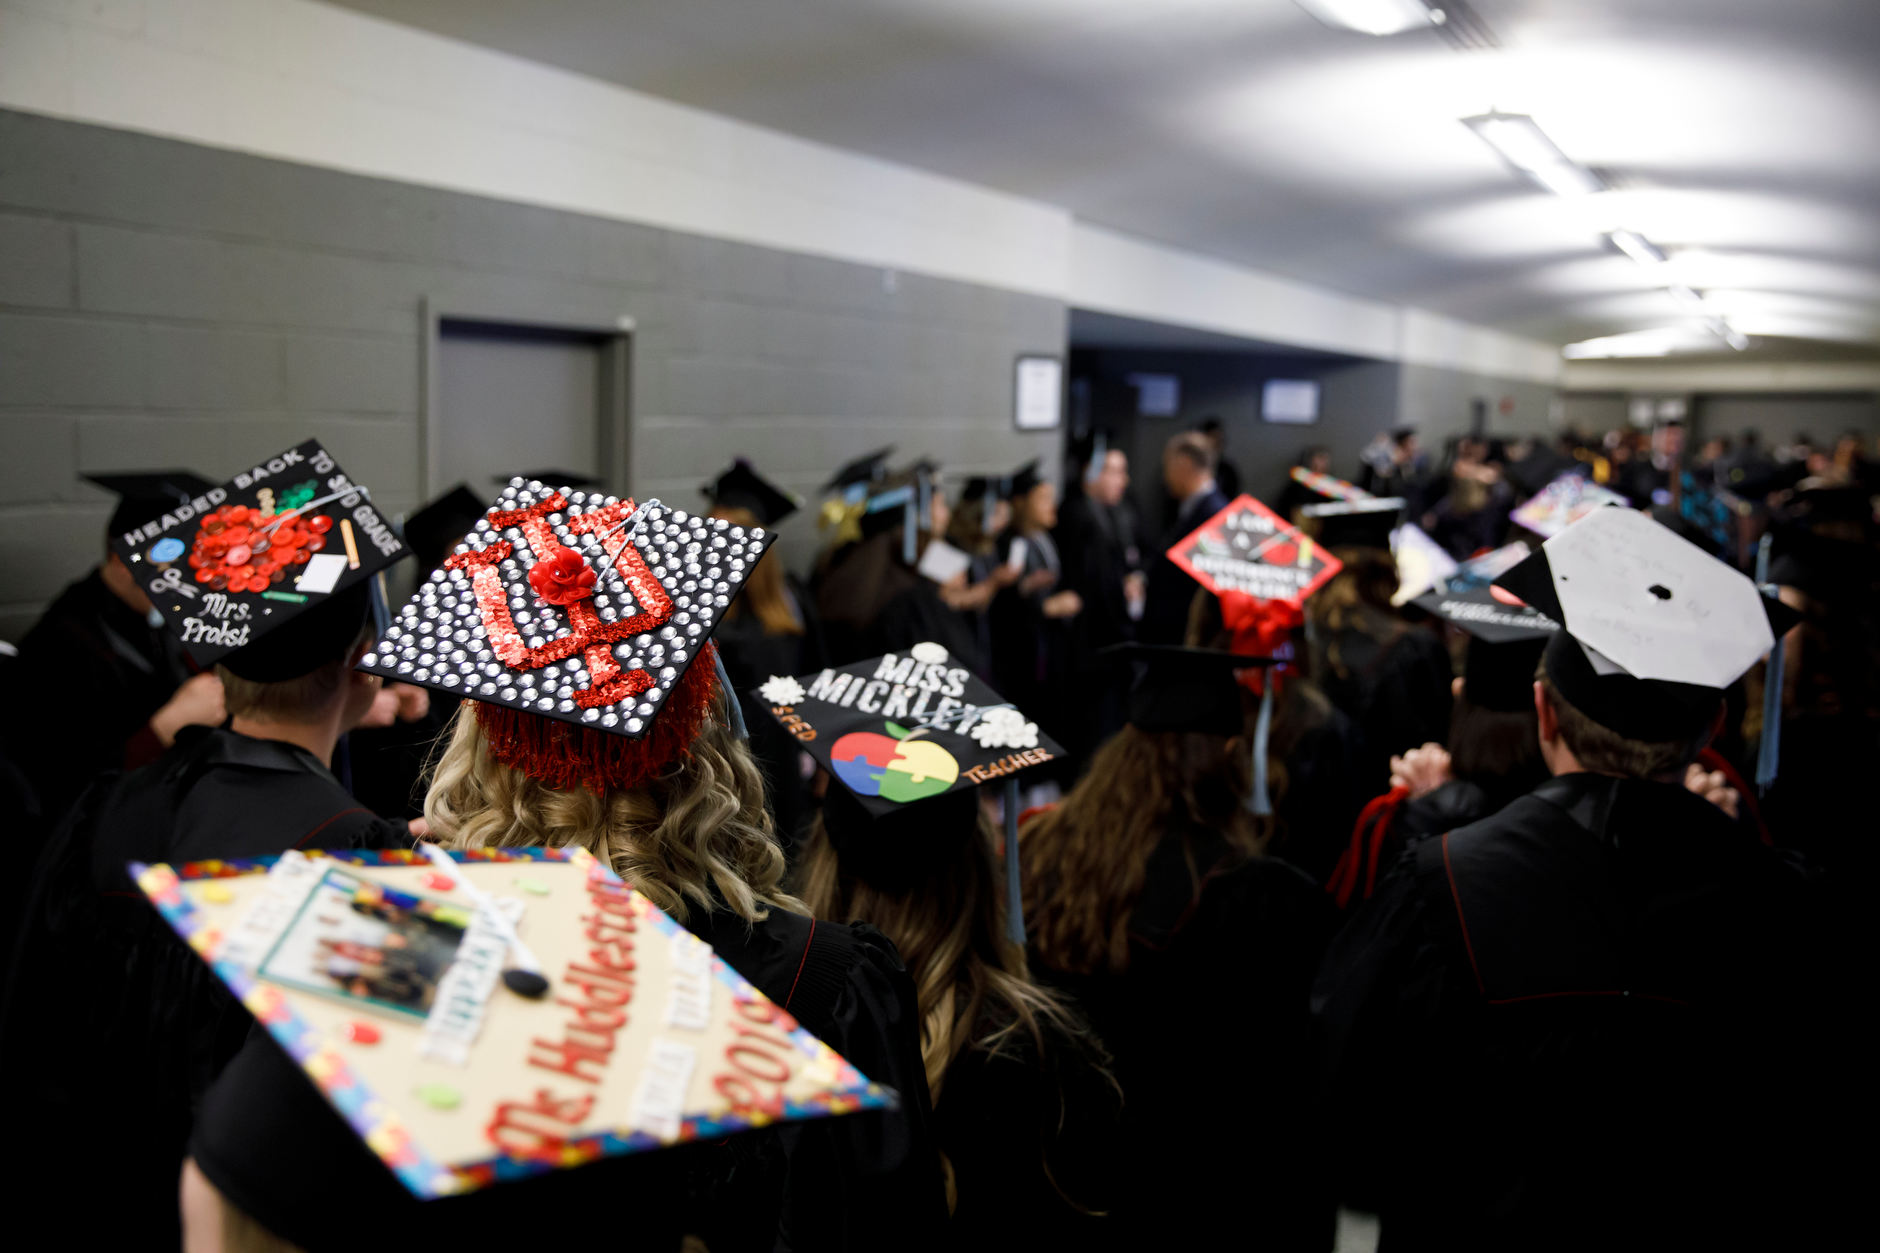 An Indiana University graduate wears a decorated mortarboard before the Purdue Fort Wayne and IU Fort Wayne Commencement at the Allen County War Memorial Coliseum on Wednesday, May 8, 2019. (James Brosher/Indiana University)